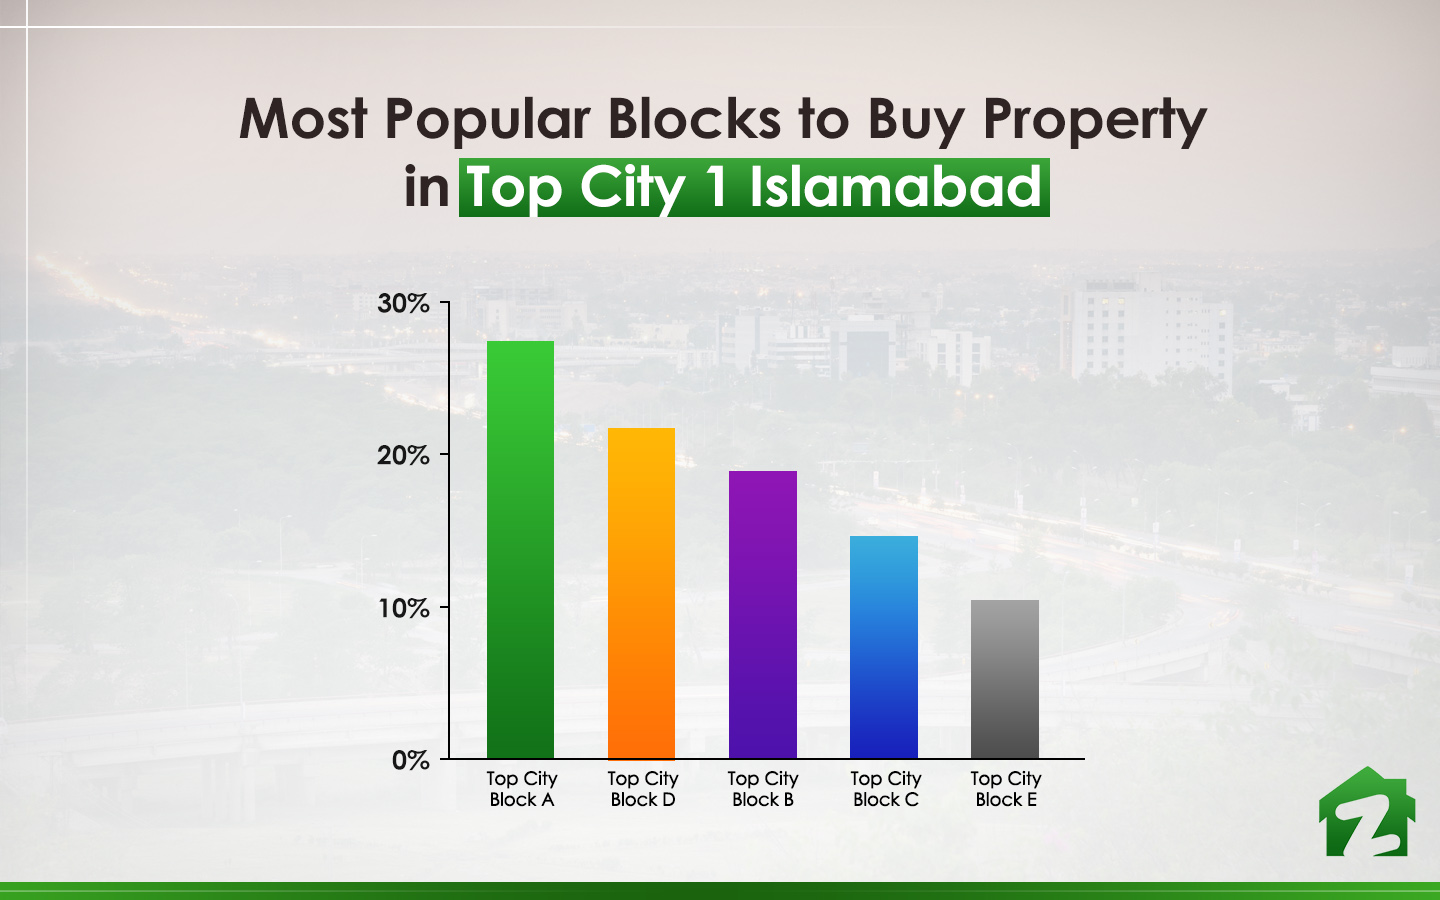 Popular Blocks to Buy Property in Top City 1 Islamabad